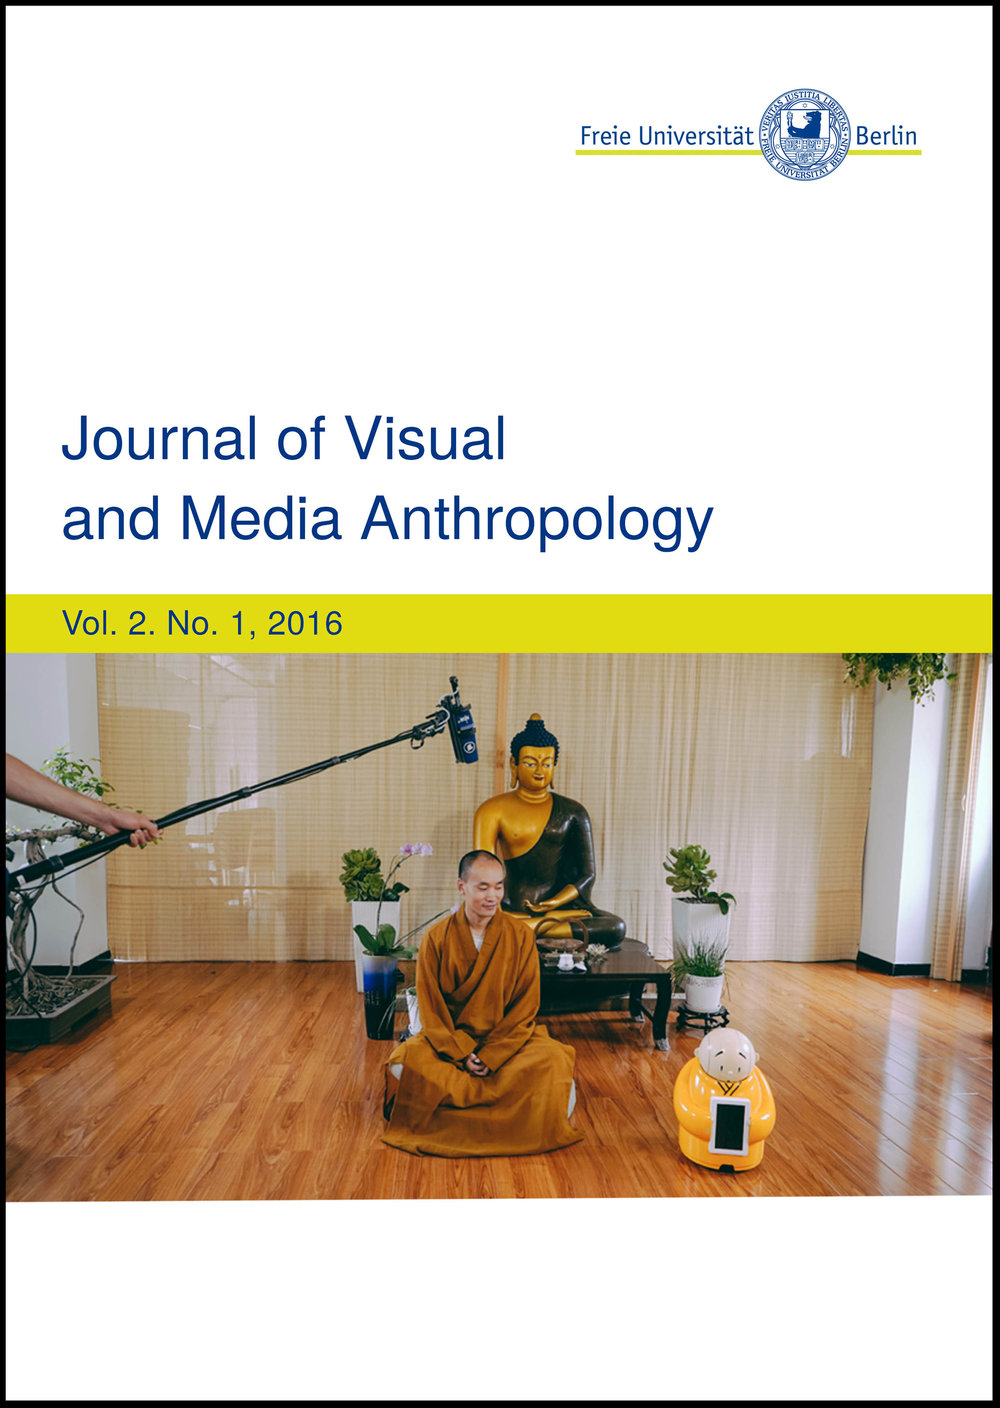 JOURNAL OF VISUAL AND MEDIA ANTHROPOLOGY  - The sophomore issue of the Journal of Visual and Media Anthropology consists of four articles and six short ethnographic films. Reflecting the expanding diversity and variety of research fields in Digital Anthropology, these works present new research topics beyond what has previously been thought of as digitalization processes. Specifically, this journal contains the topics of religion, games and play, urban mobility, community development, online dating and big data.EDITORS: PROF. DR. URTE UNDINE FRÖMMING, STEFFEN, KÖHN, MIKE TERRY. HERE